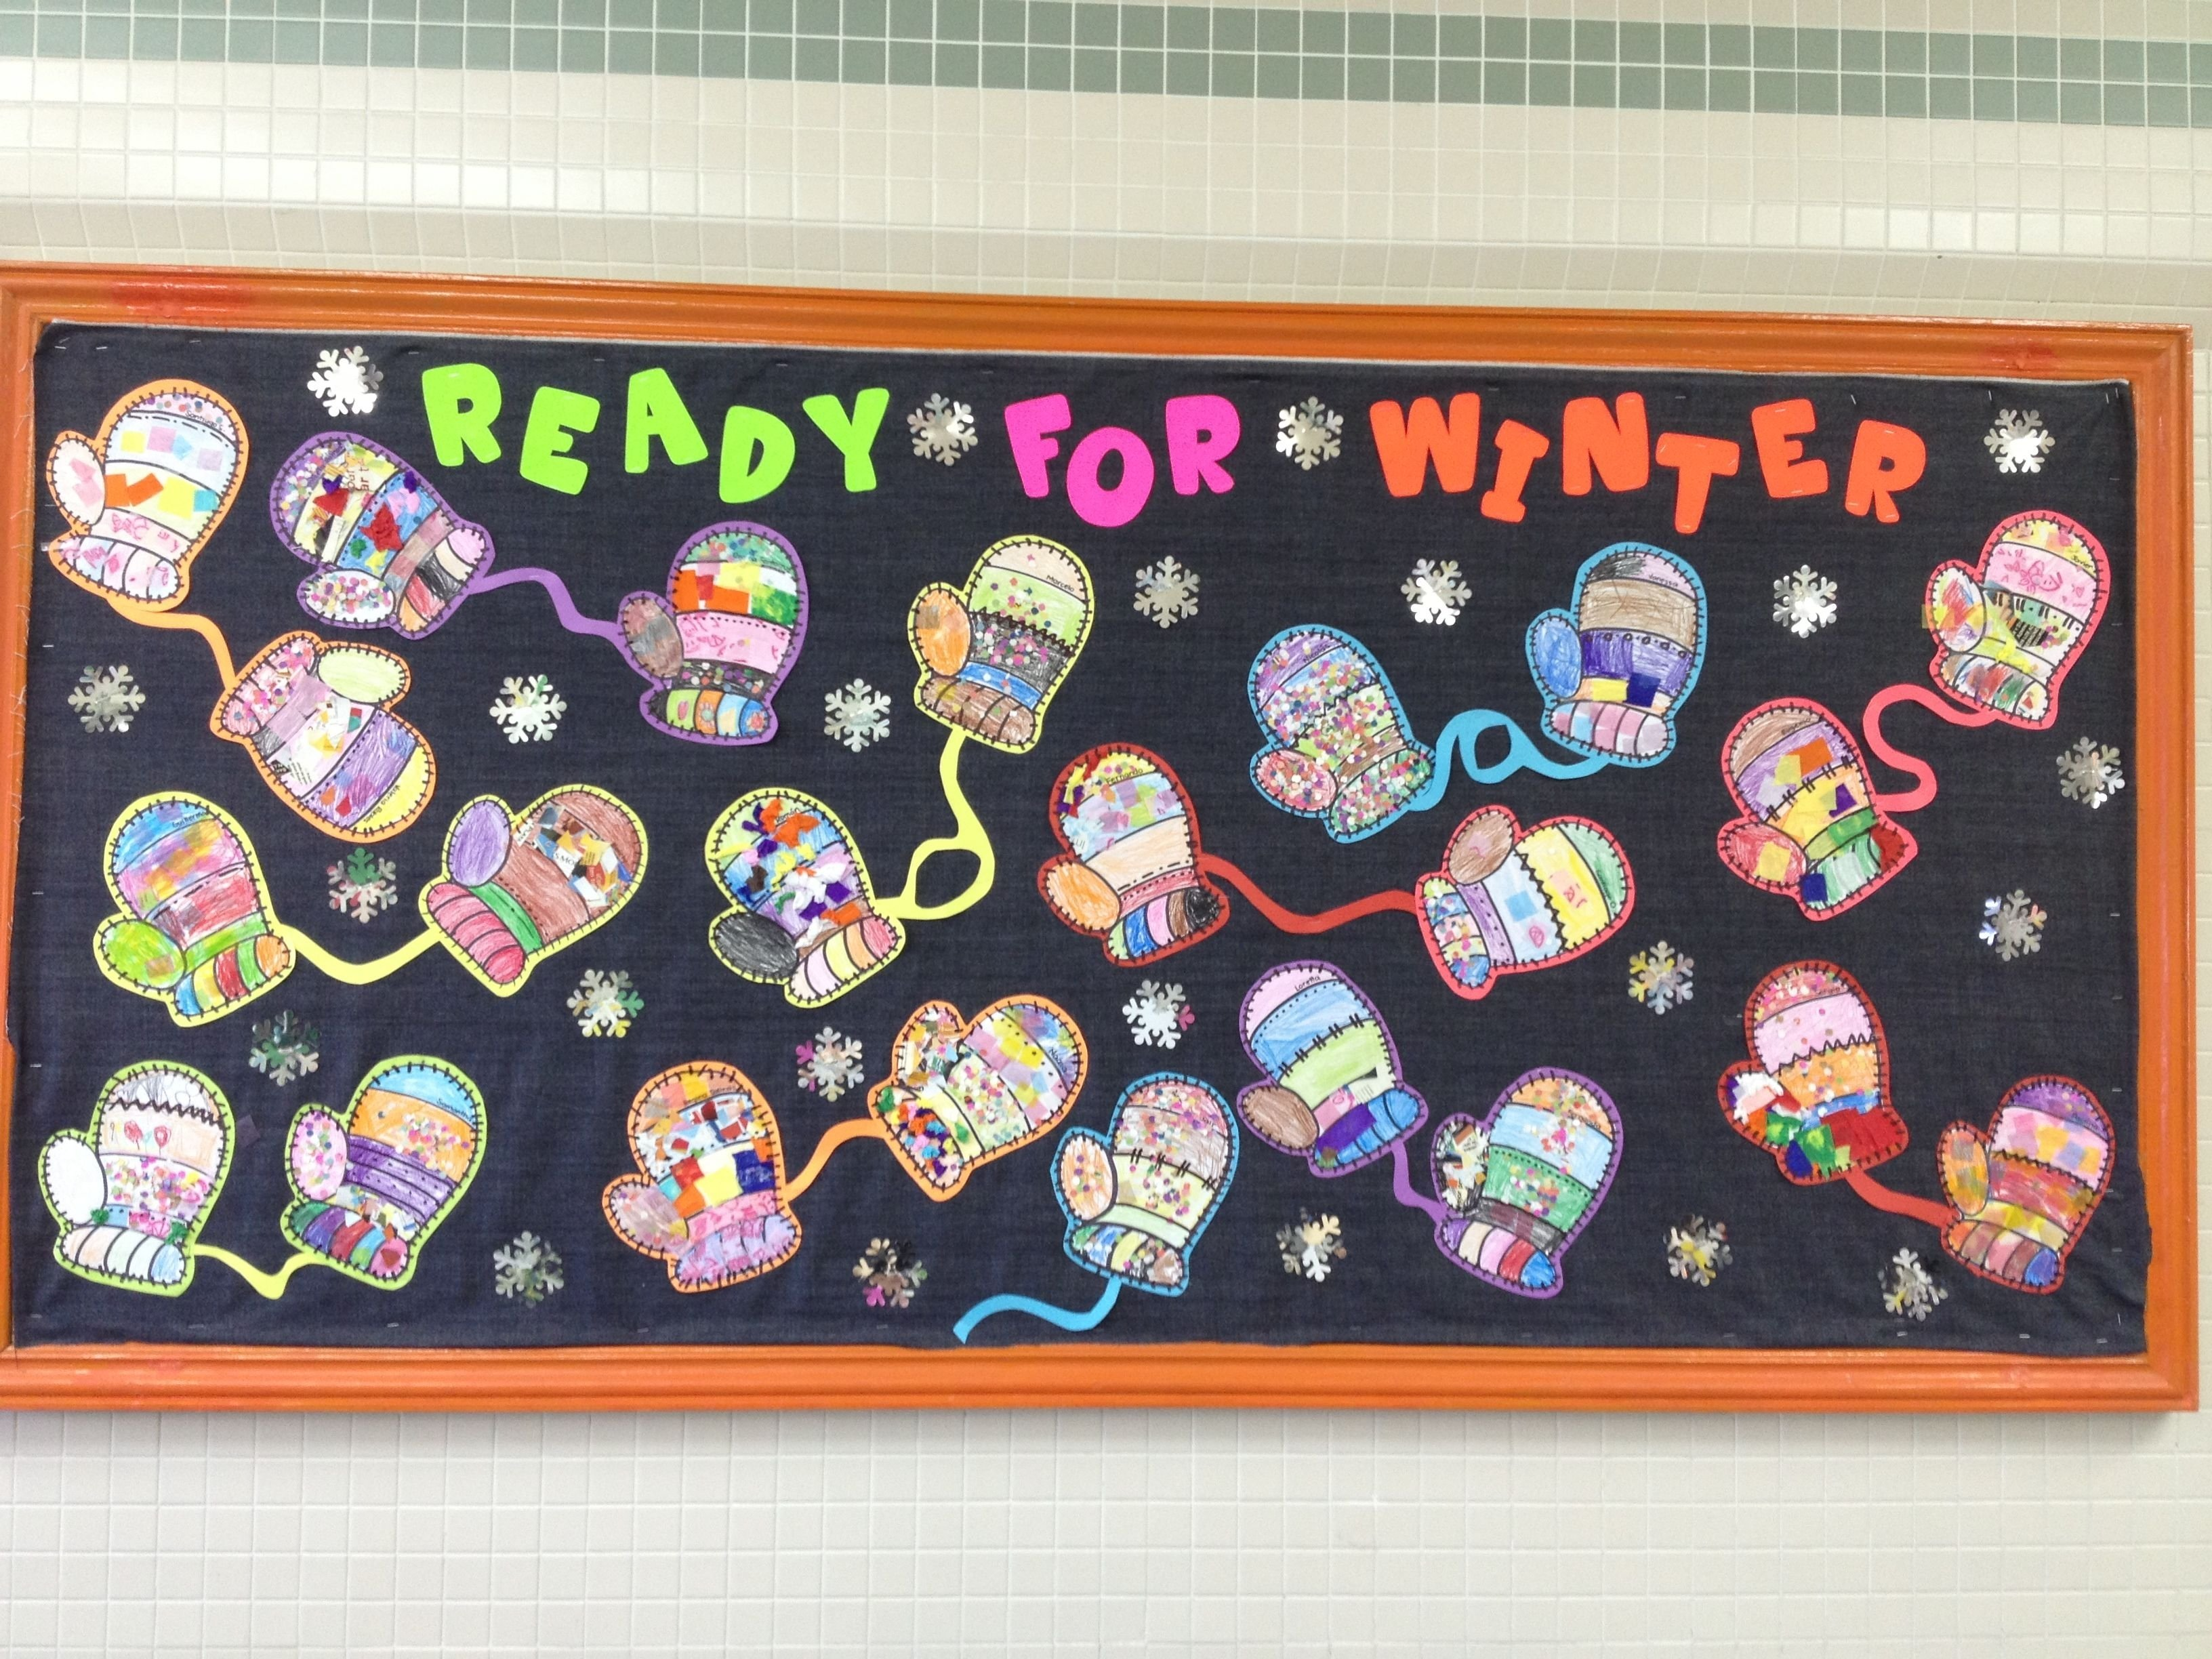 10 Ideal Bulletin Board Ideas For January image result for january bulletin board ideas bulletin boards 2021